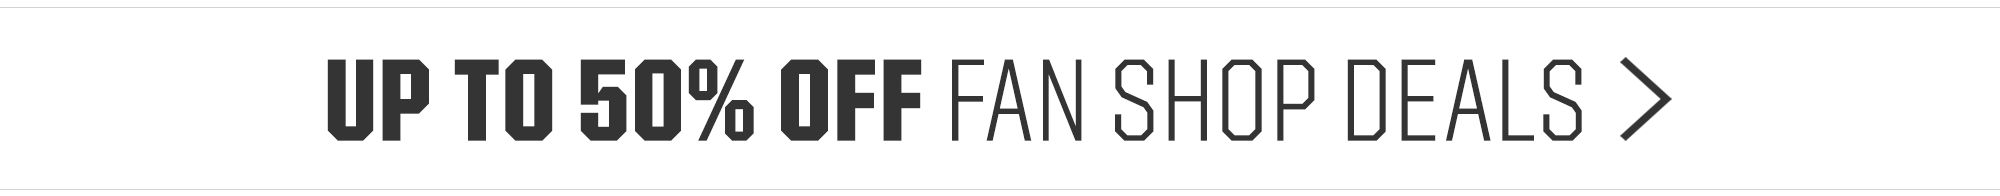 Up to 50% Off Fan Shop Deals